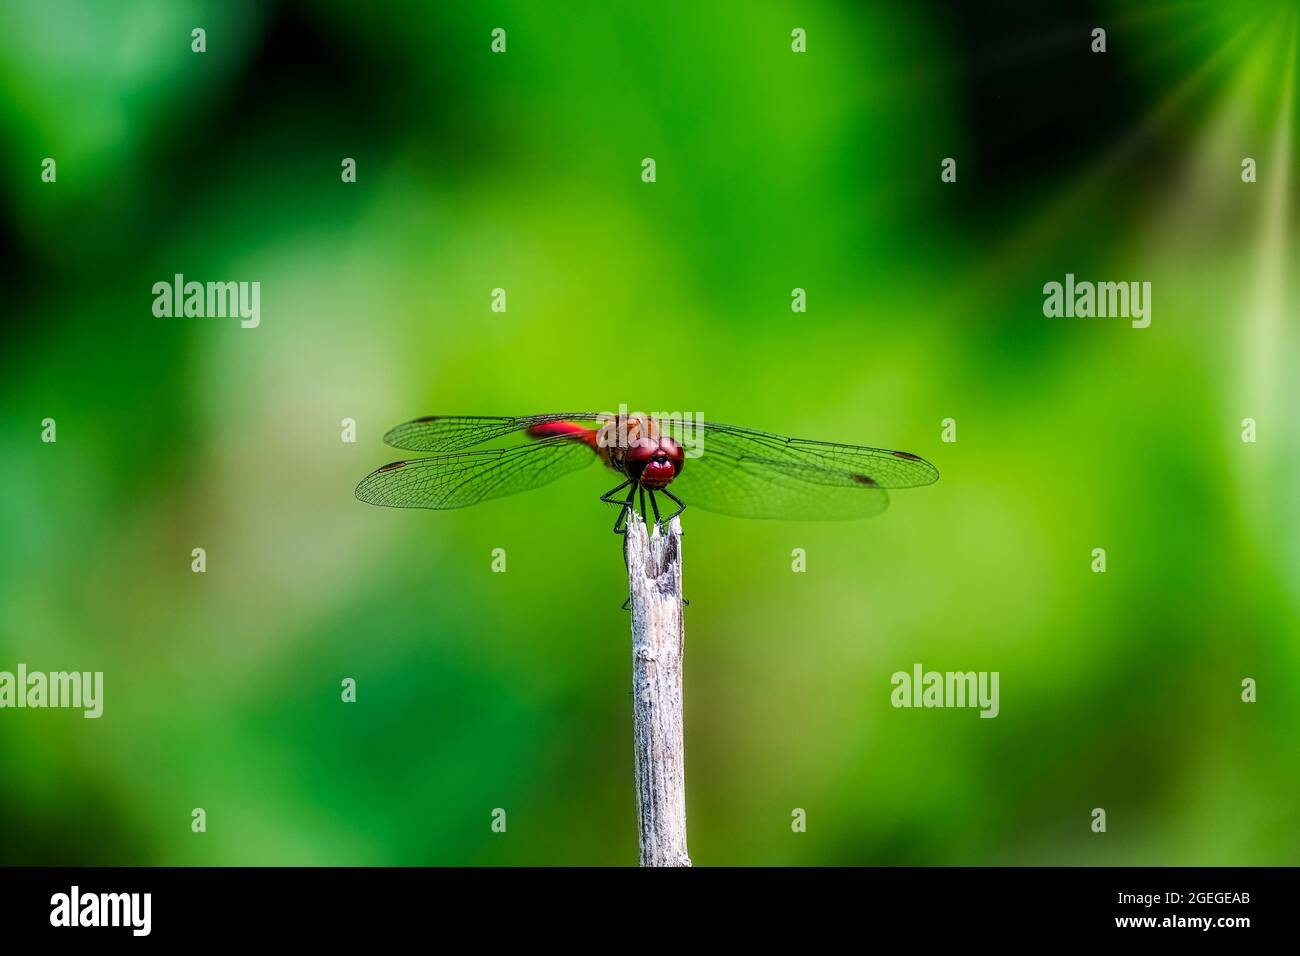 Red dragonfly on a stick against green background Stock Photo